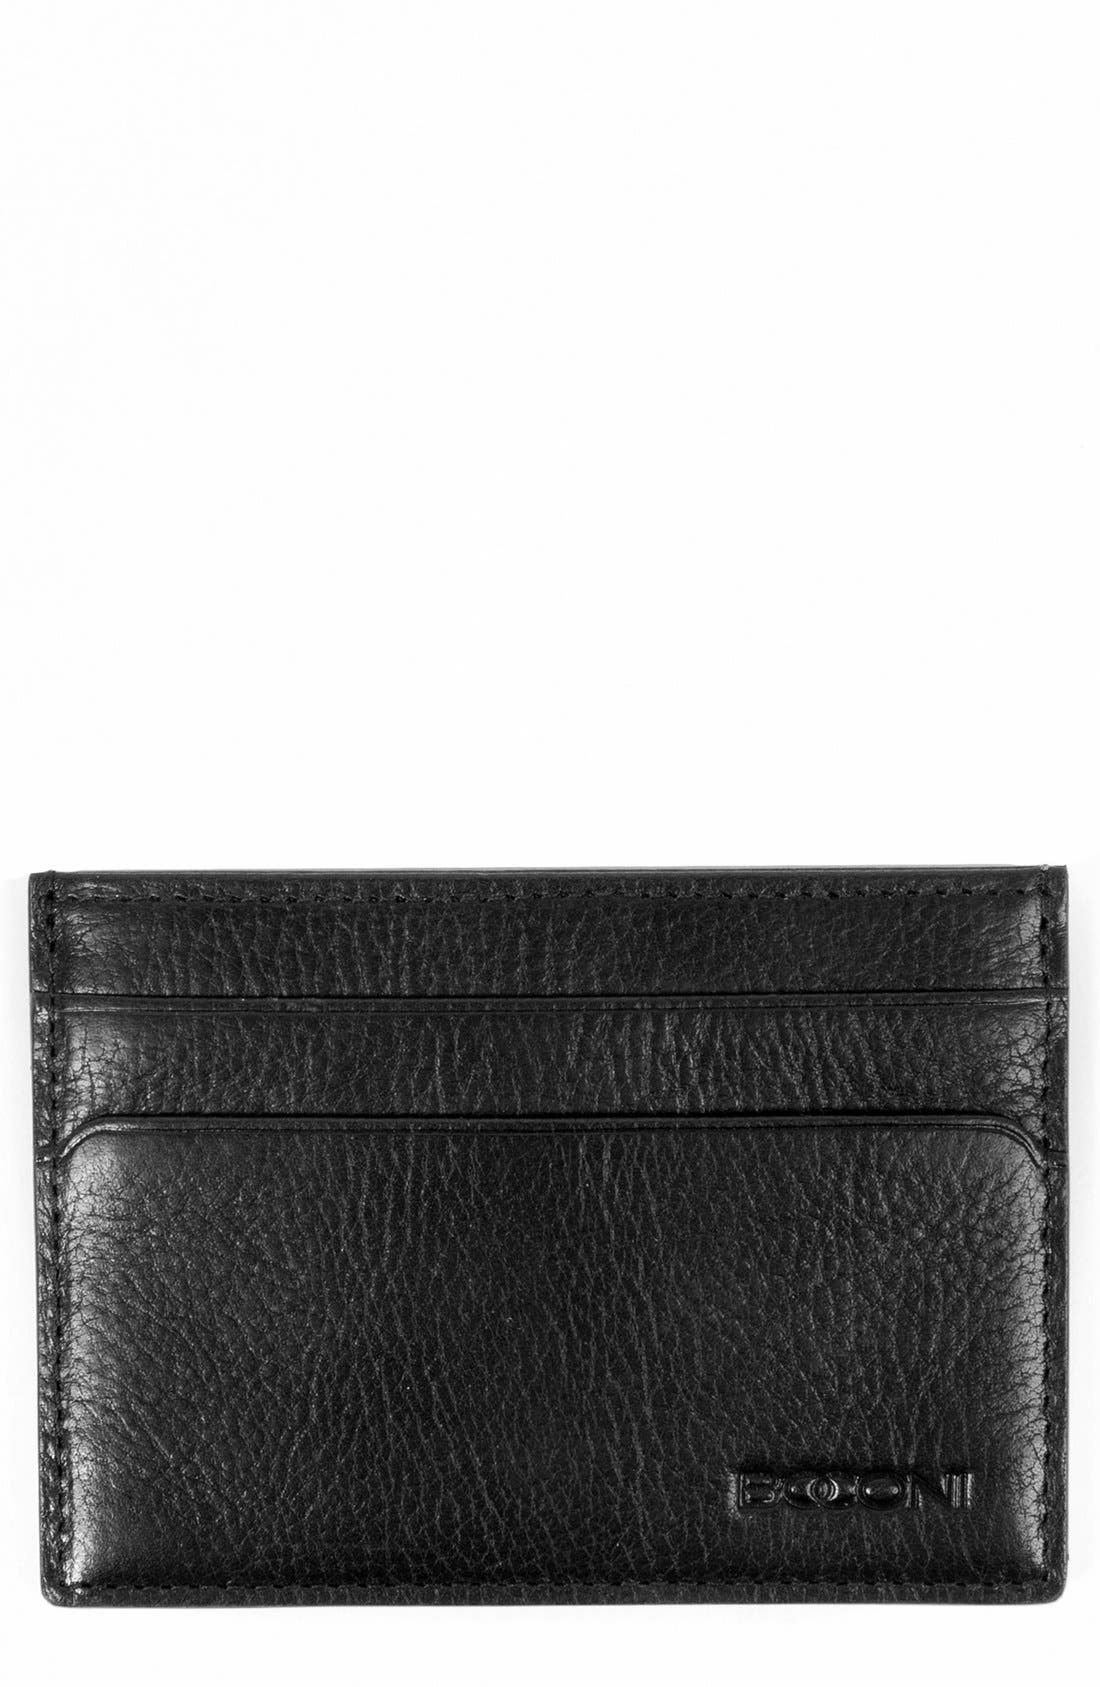 Alternate Image 1 Selected - Boconi 'Becker' RFID Leather Card Case